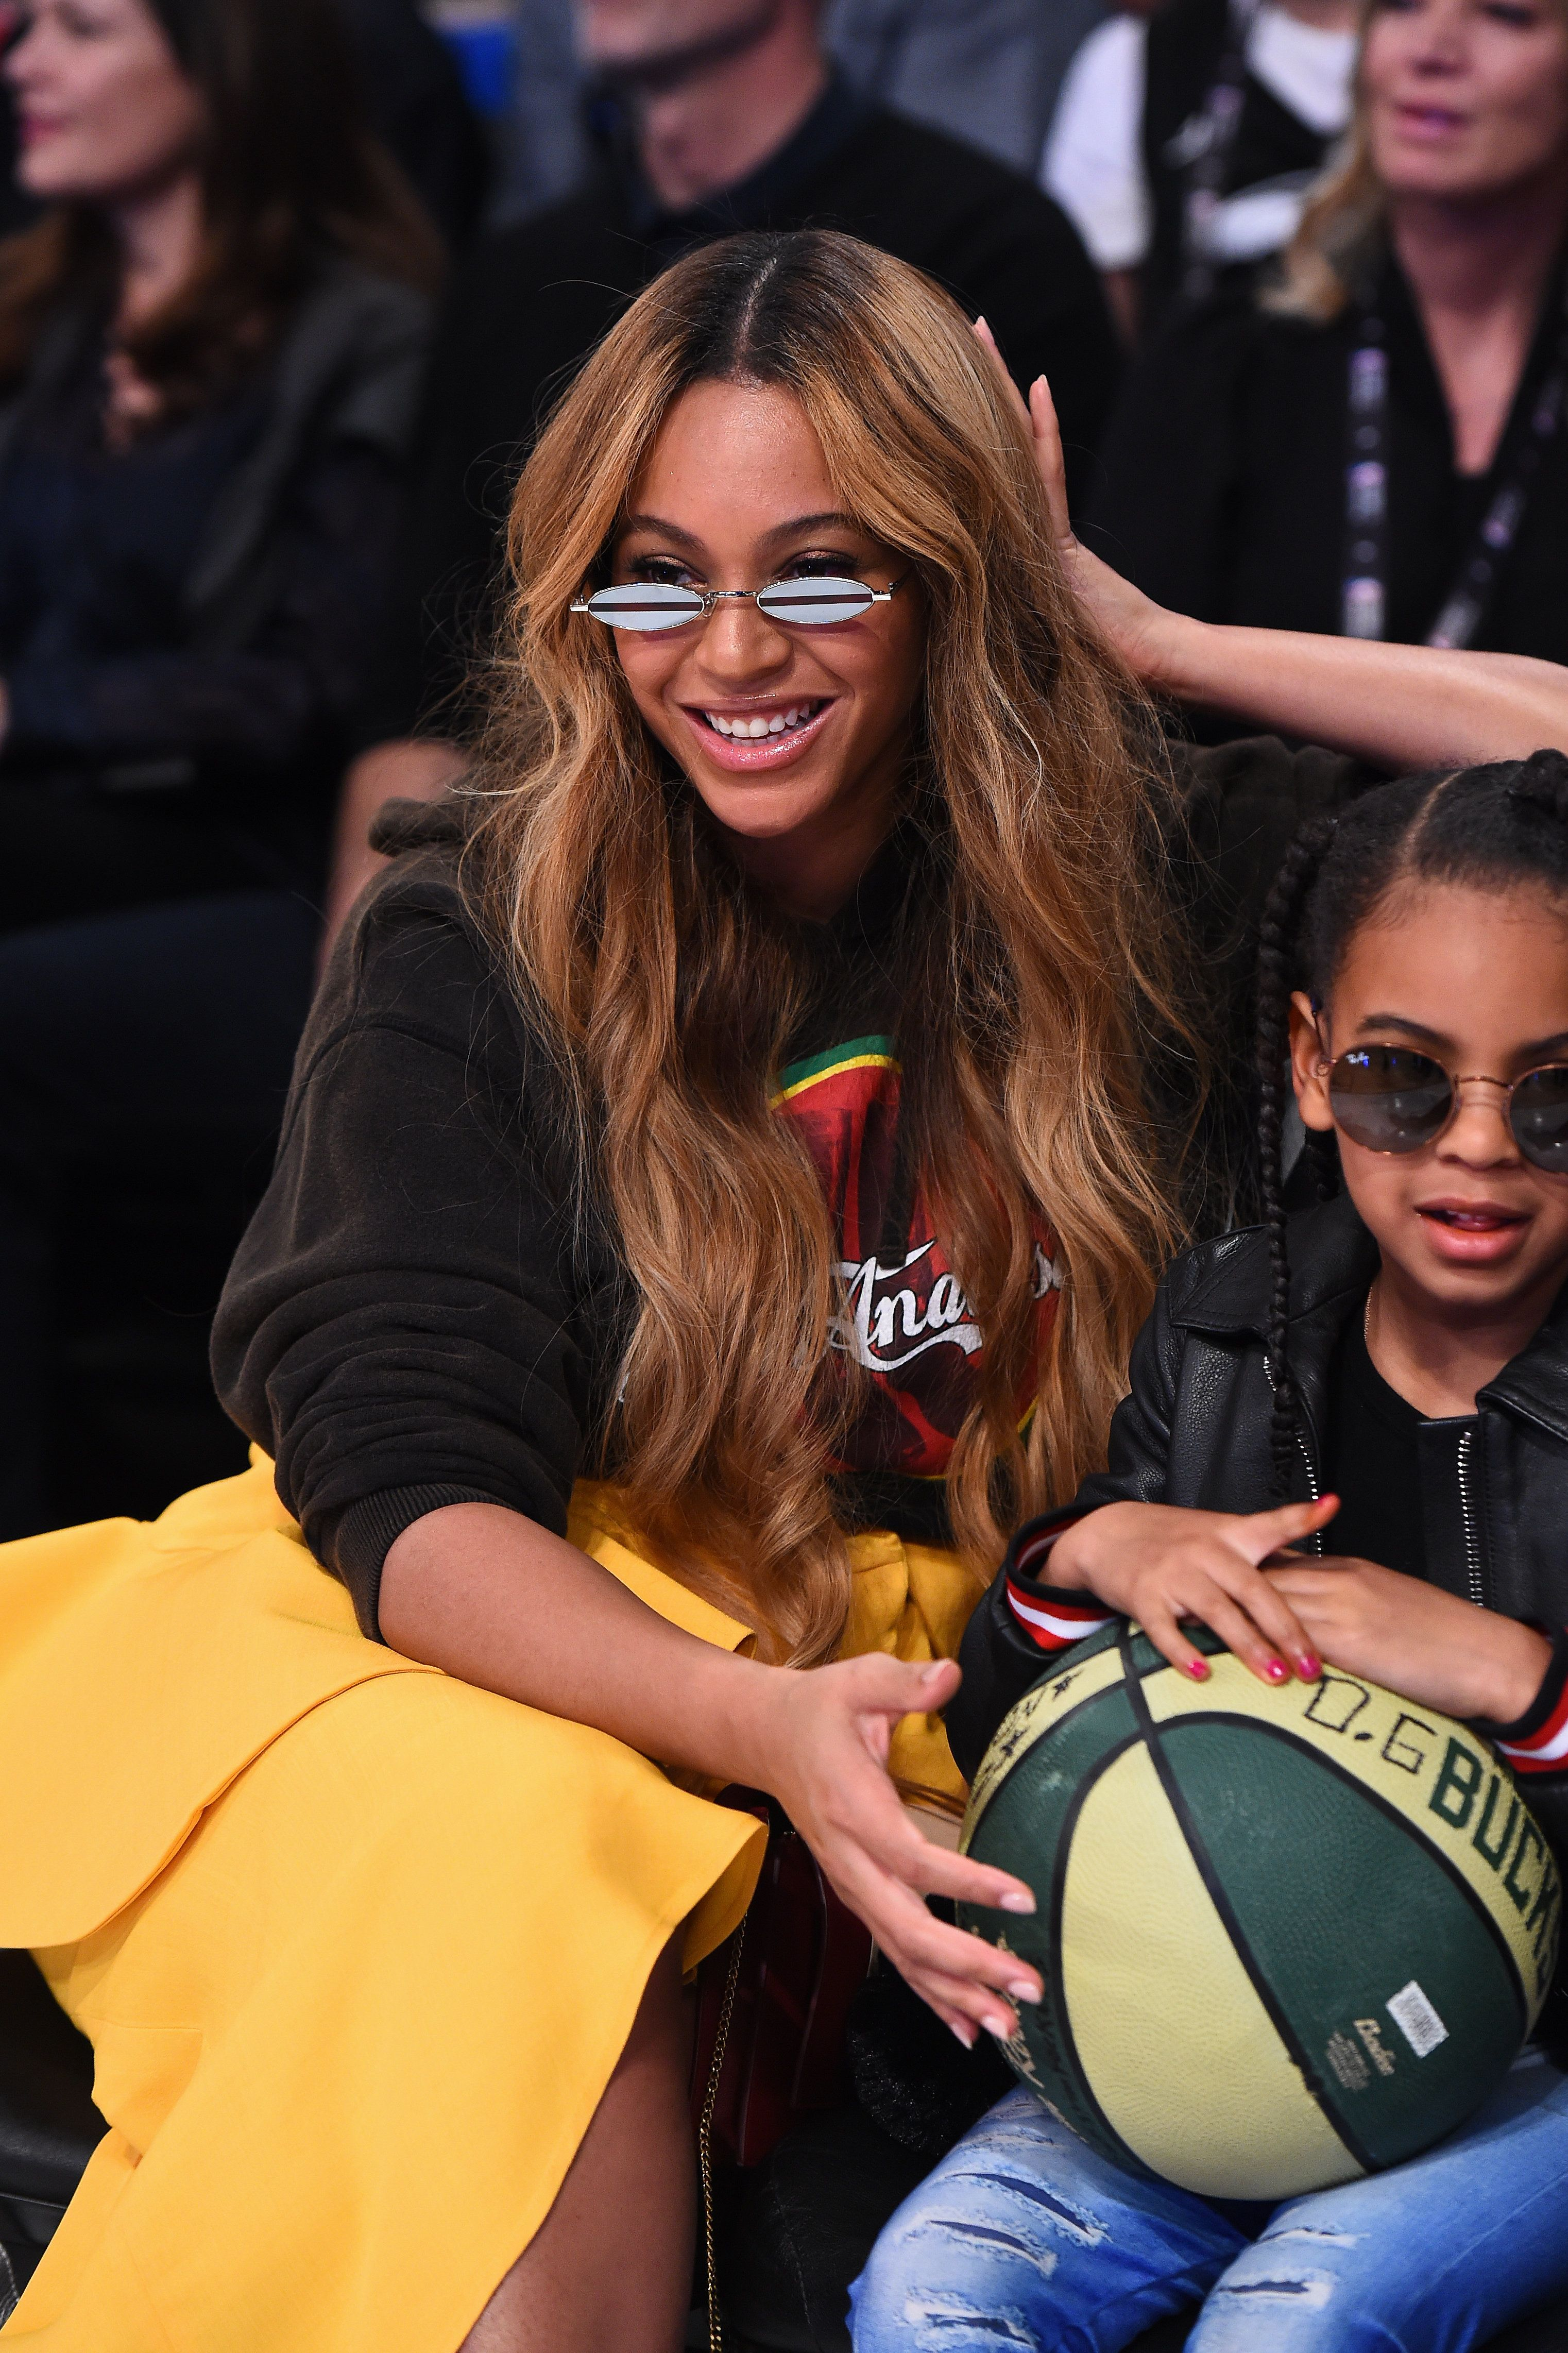 Beyoncé with daughter Blue Ivy at the NBA All-Star Game in Los Angeles in 2018.